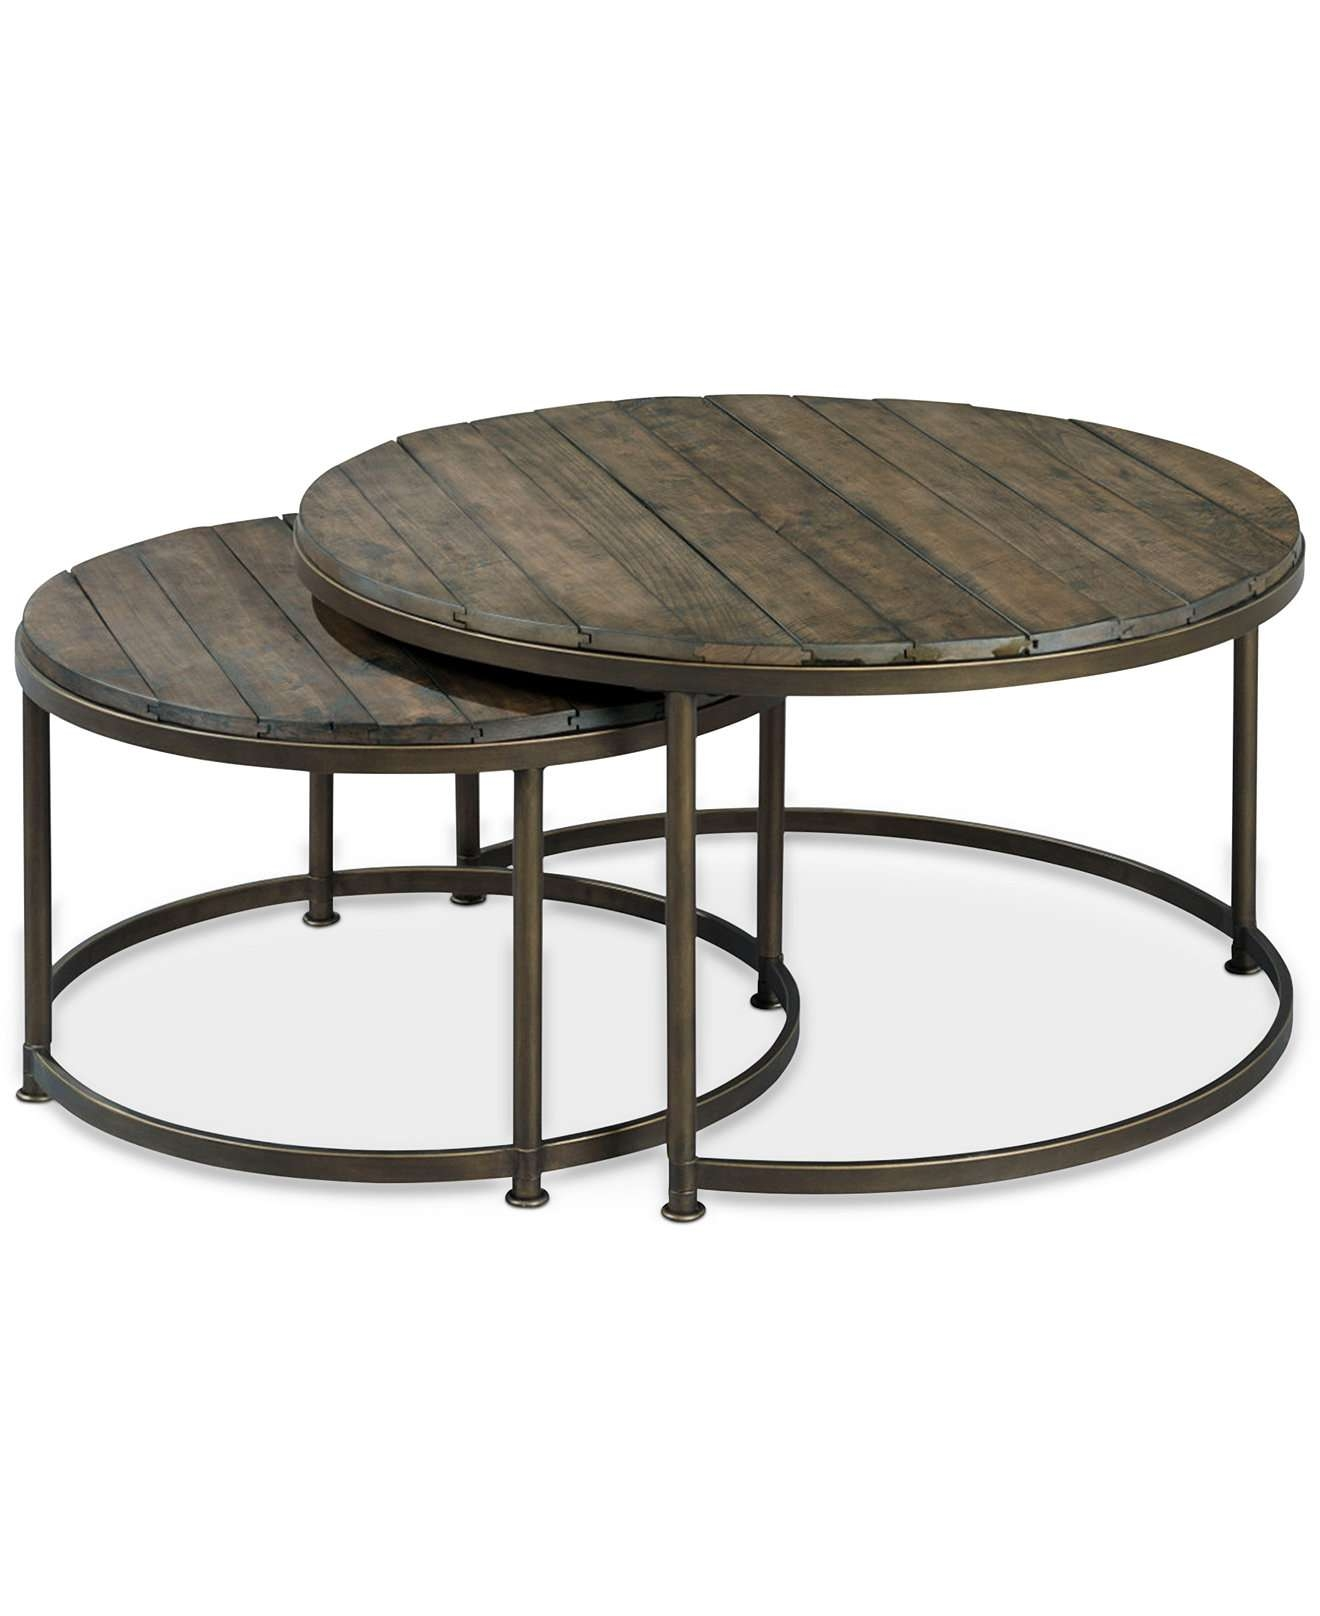 Coffee Tables : Coffee Table Stunning Metal Round Image Concept With Regard To Preferred Round Metal Coffee Tables (View 4 of 20)